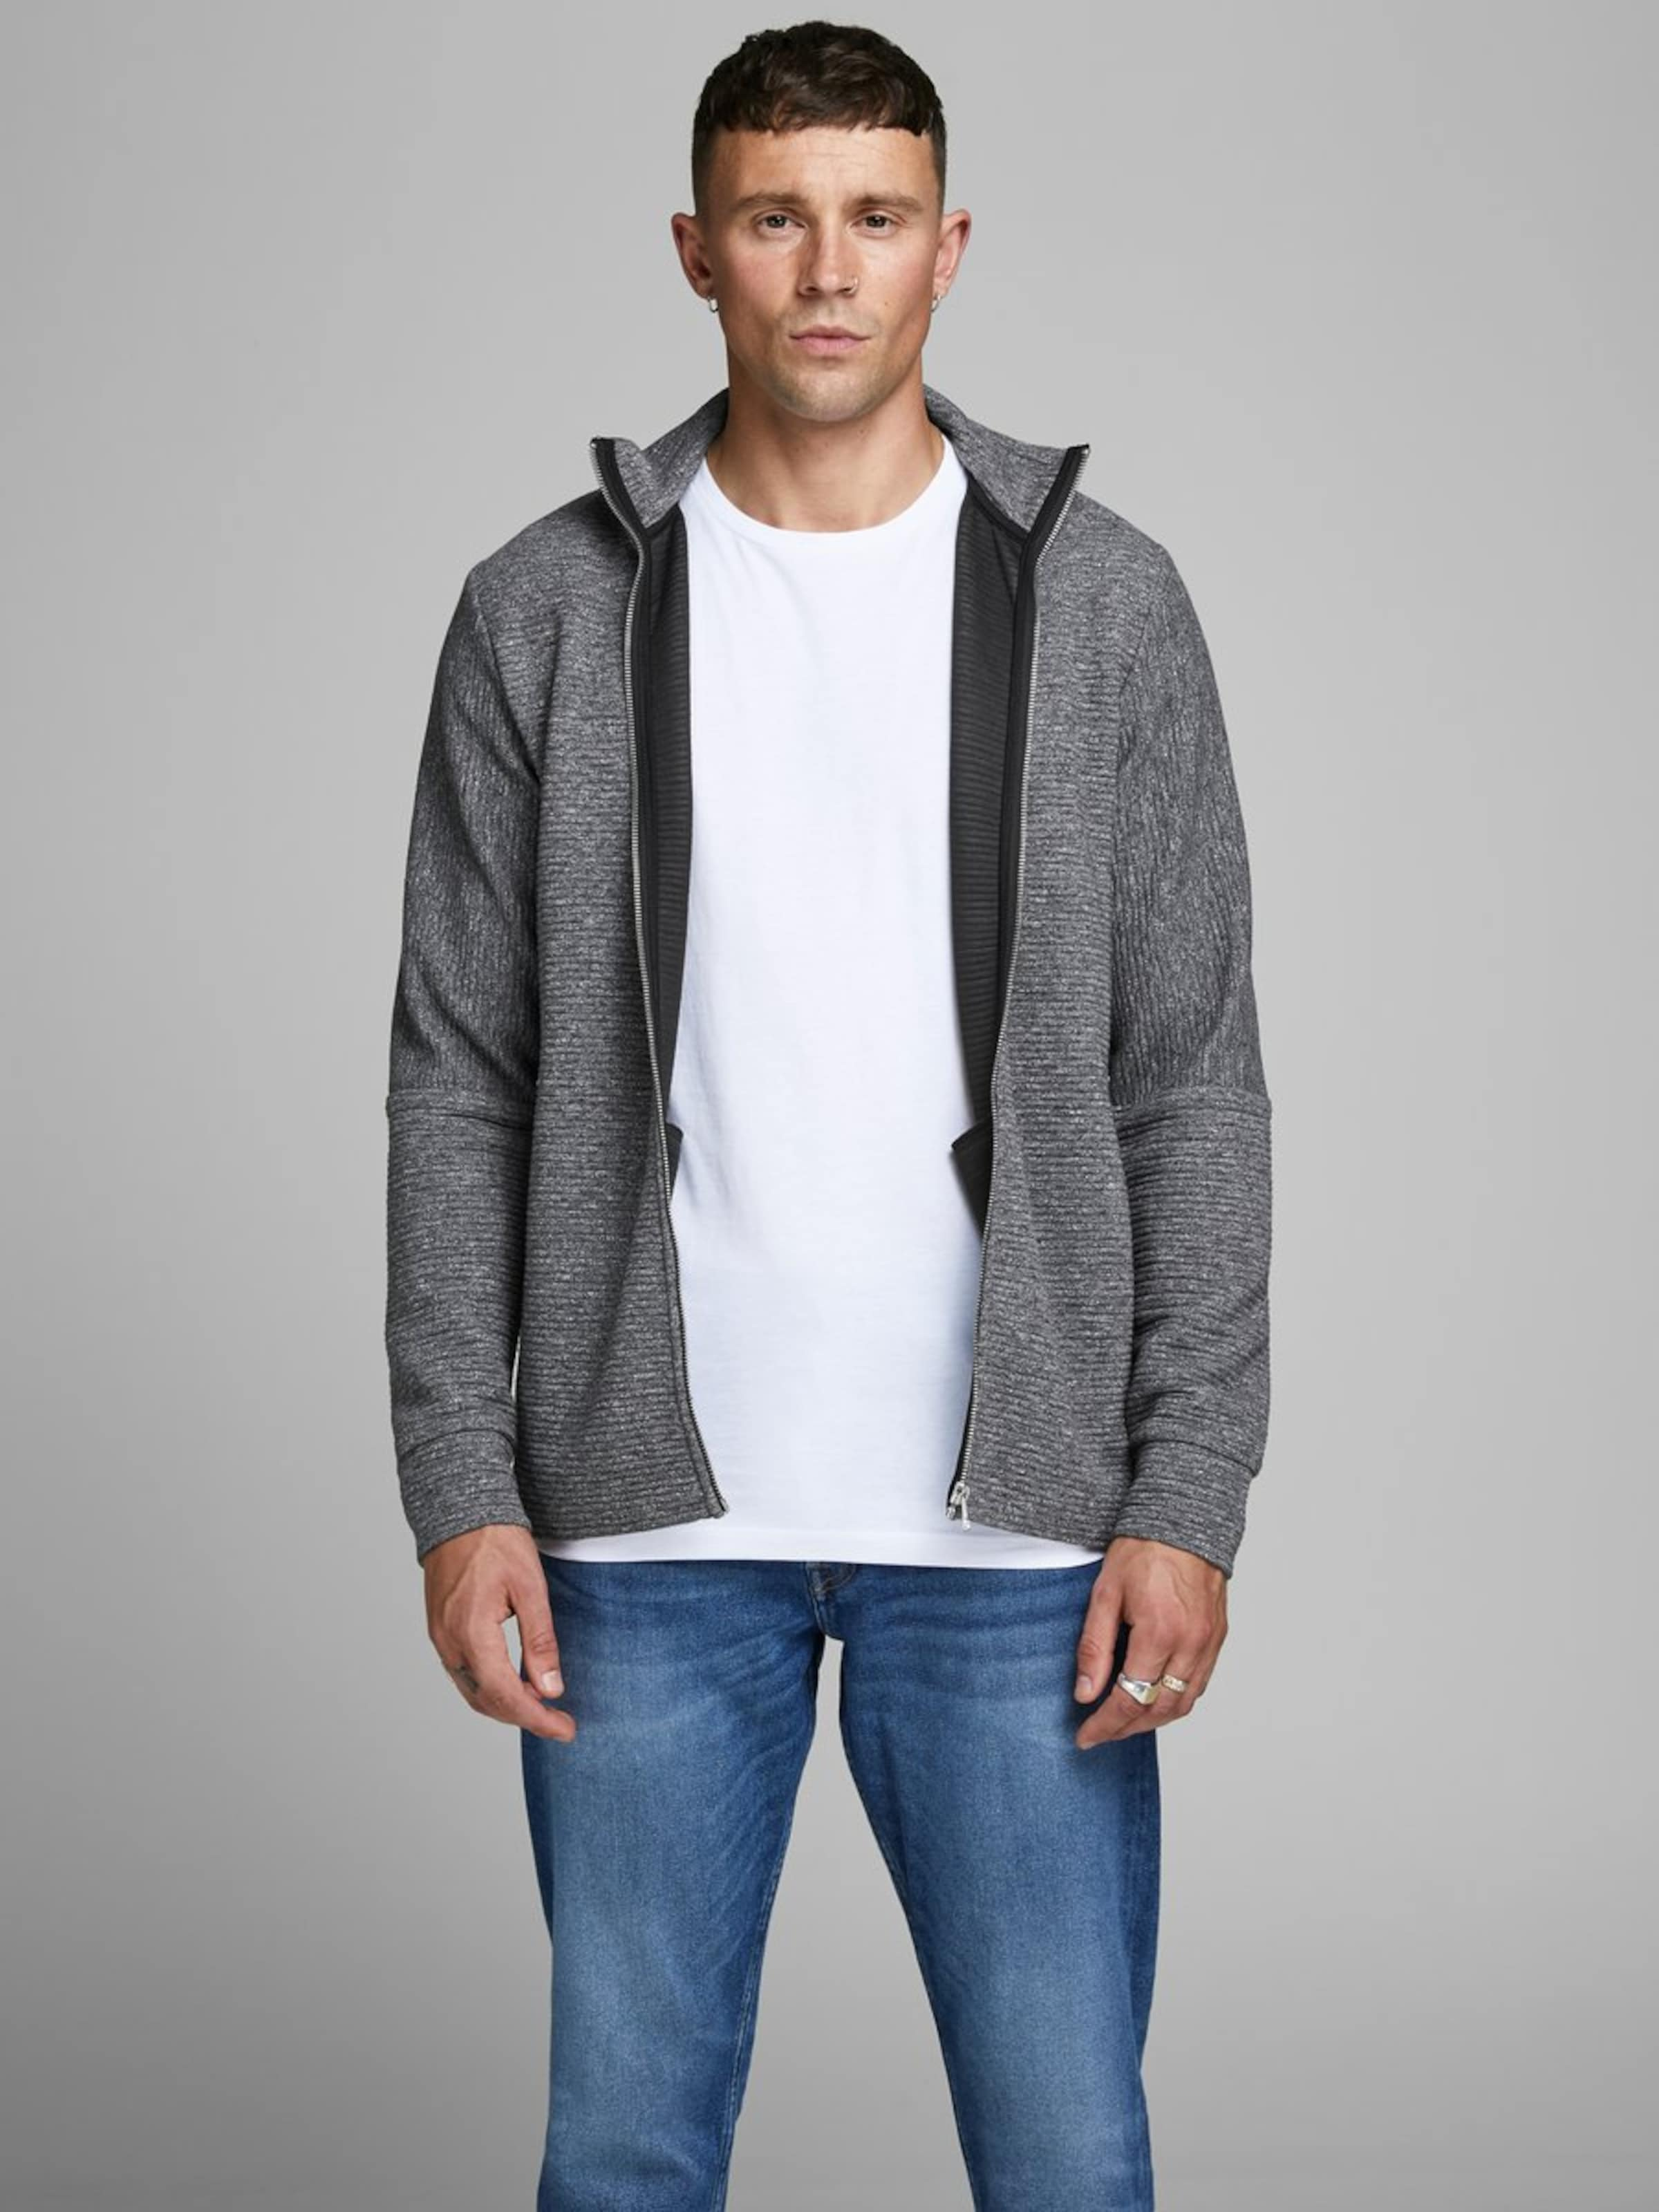 Jones Sweatjacke Graumeliert Jackamp; In CoWBredx